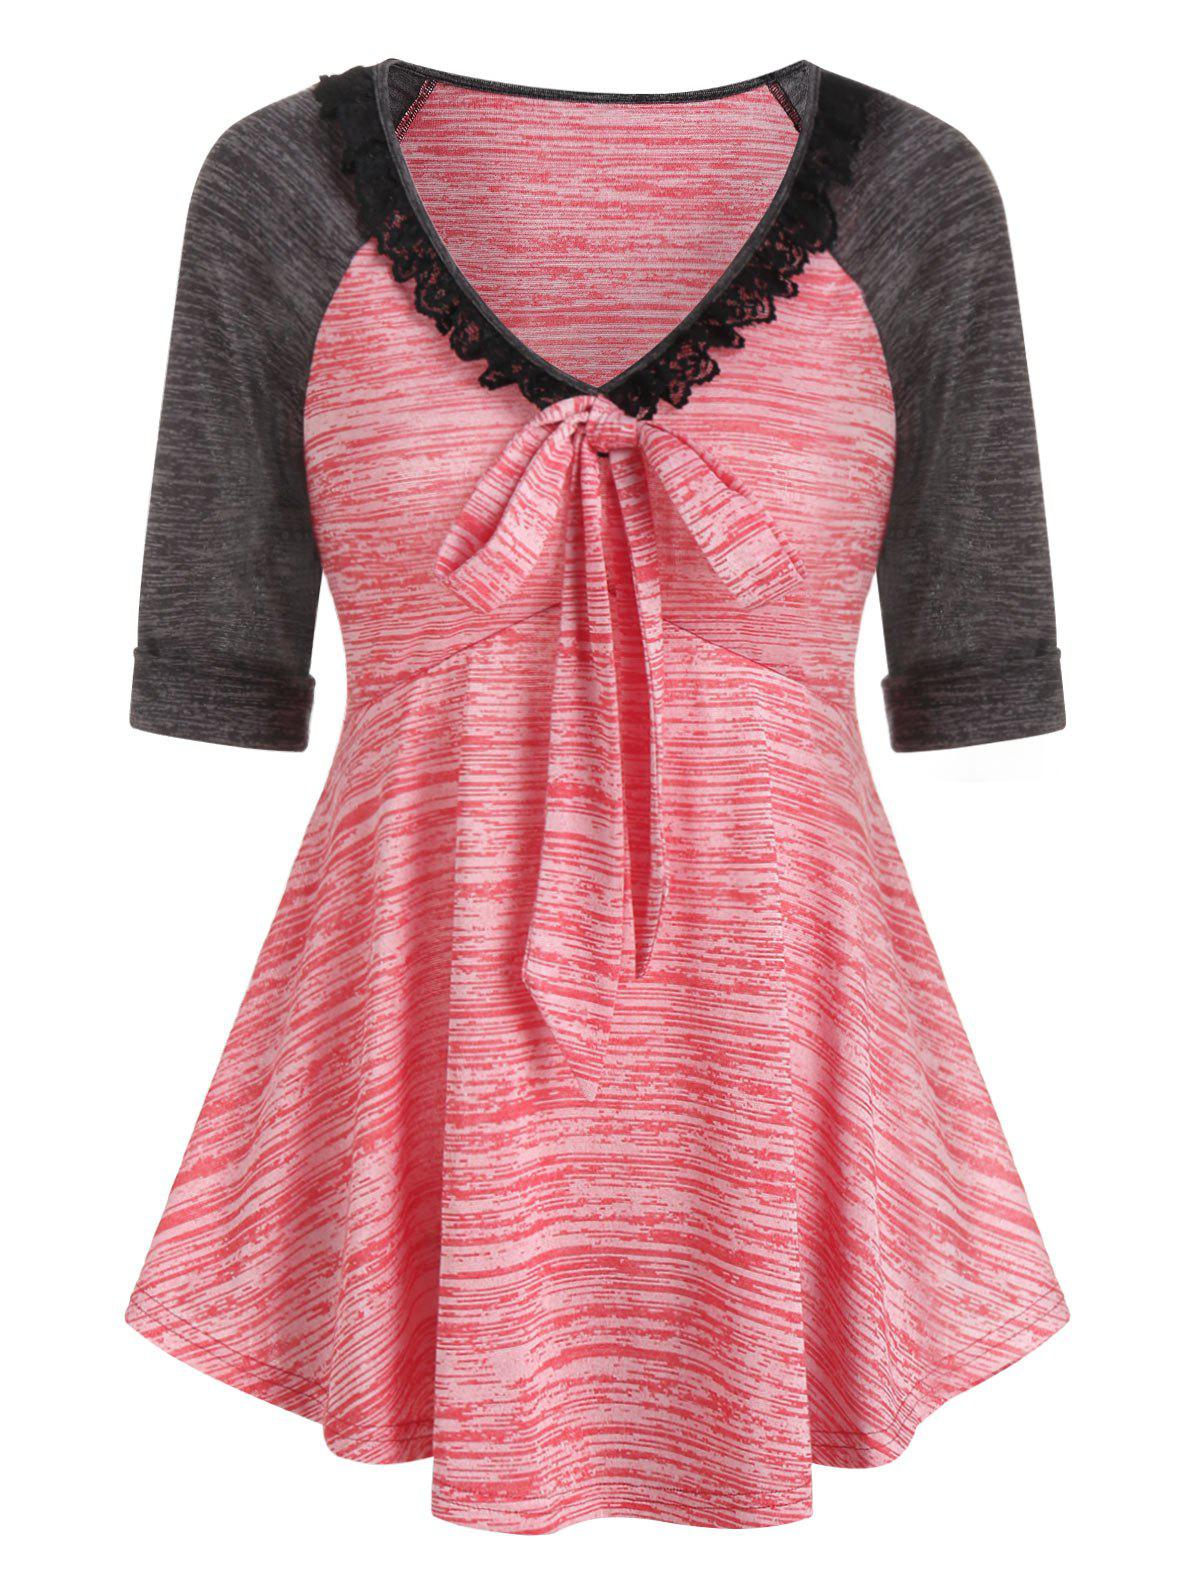 Contrast Space Dye Print Lace Insert Bowknot T-shirt - VALENTINE RED 3XL